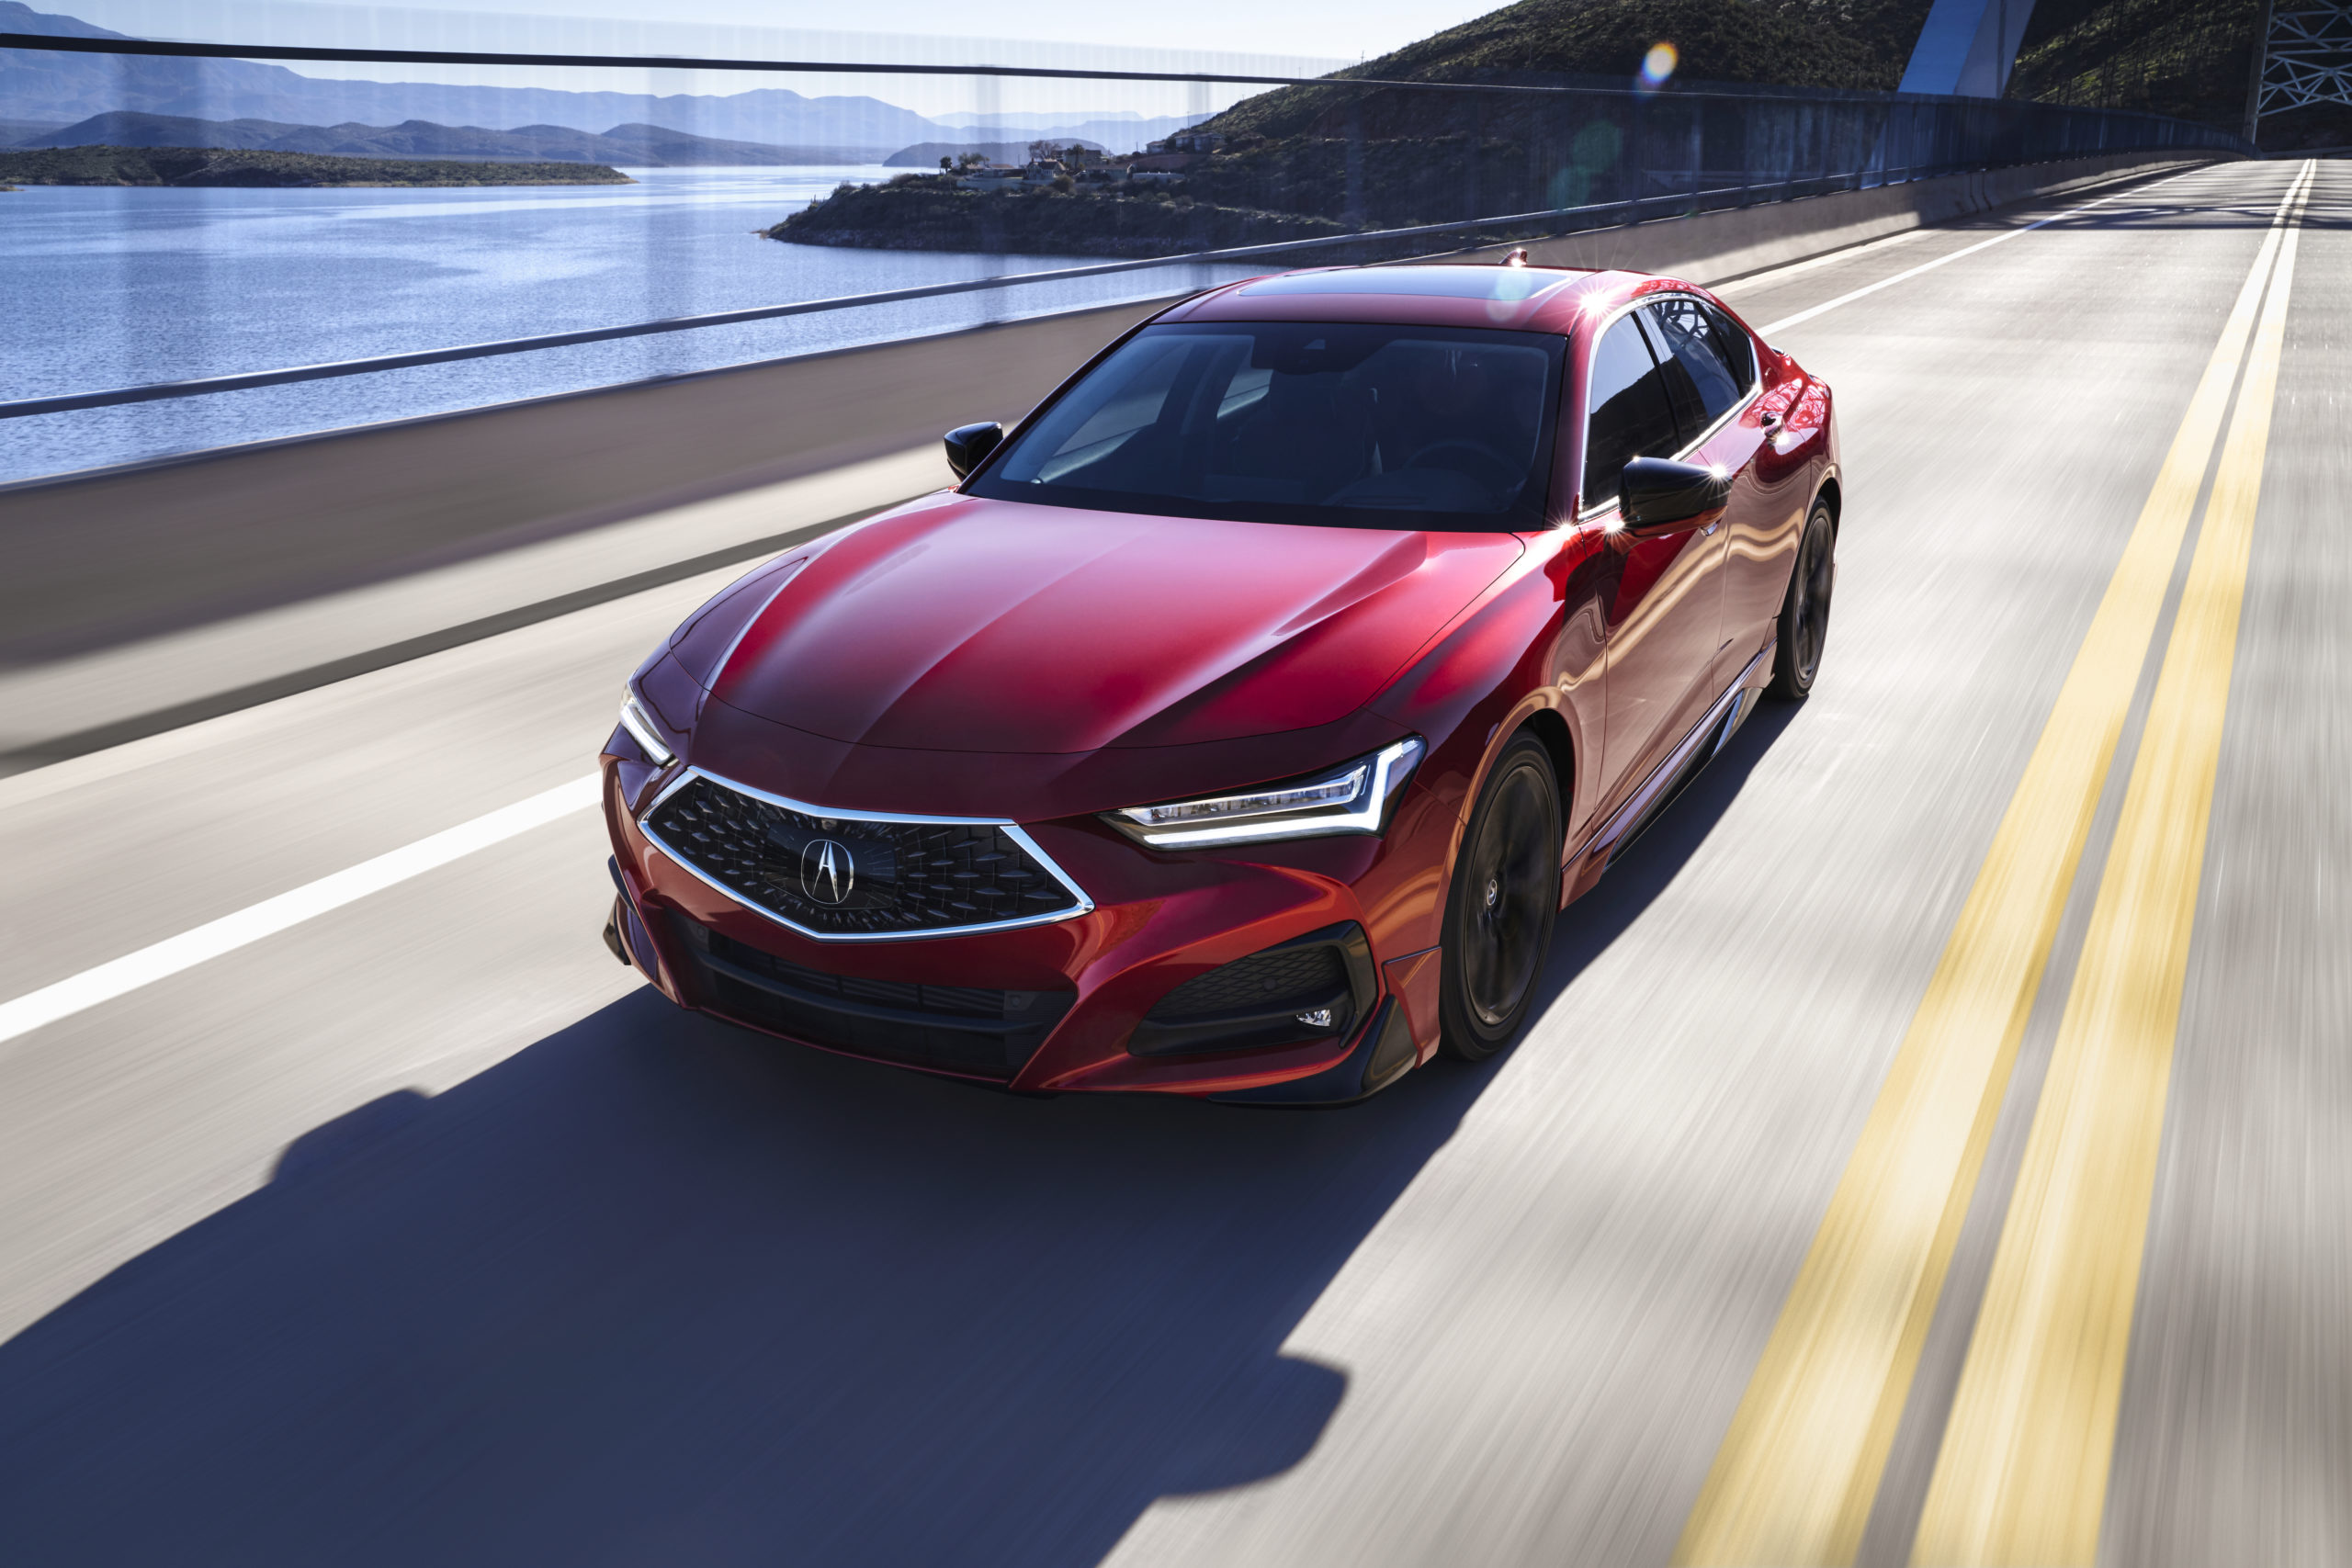 Next Generation 2021 Acura Tlx Has More Rigid Body Structure Aluminum Fenders Repairer Driven Newsrepairer Driven News